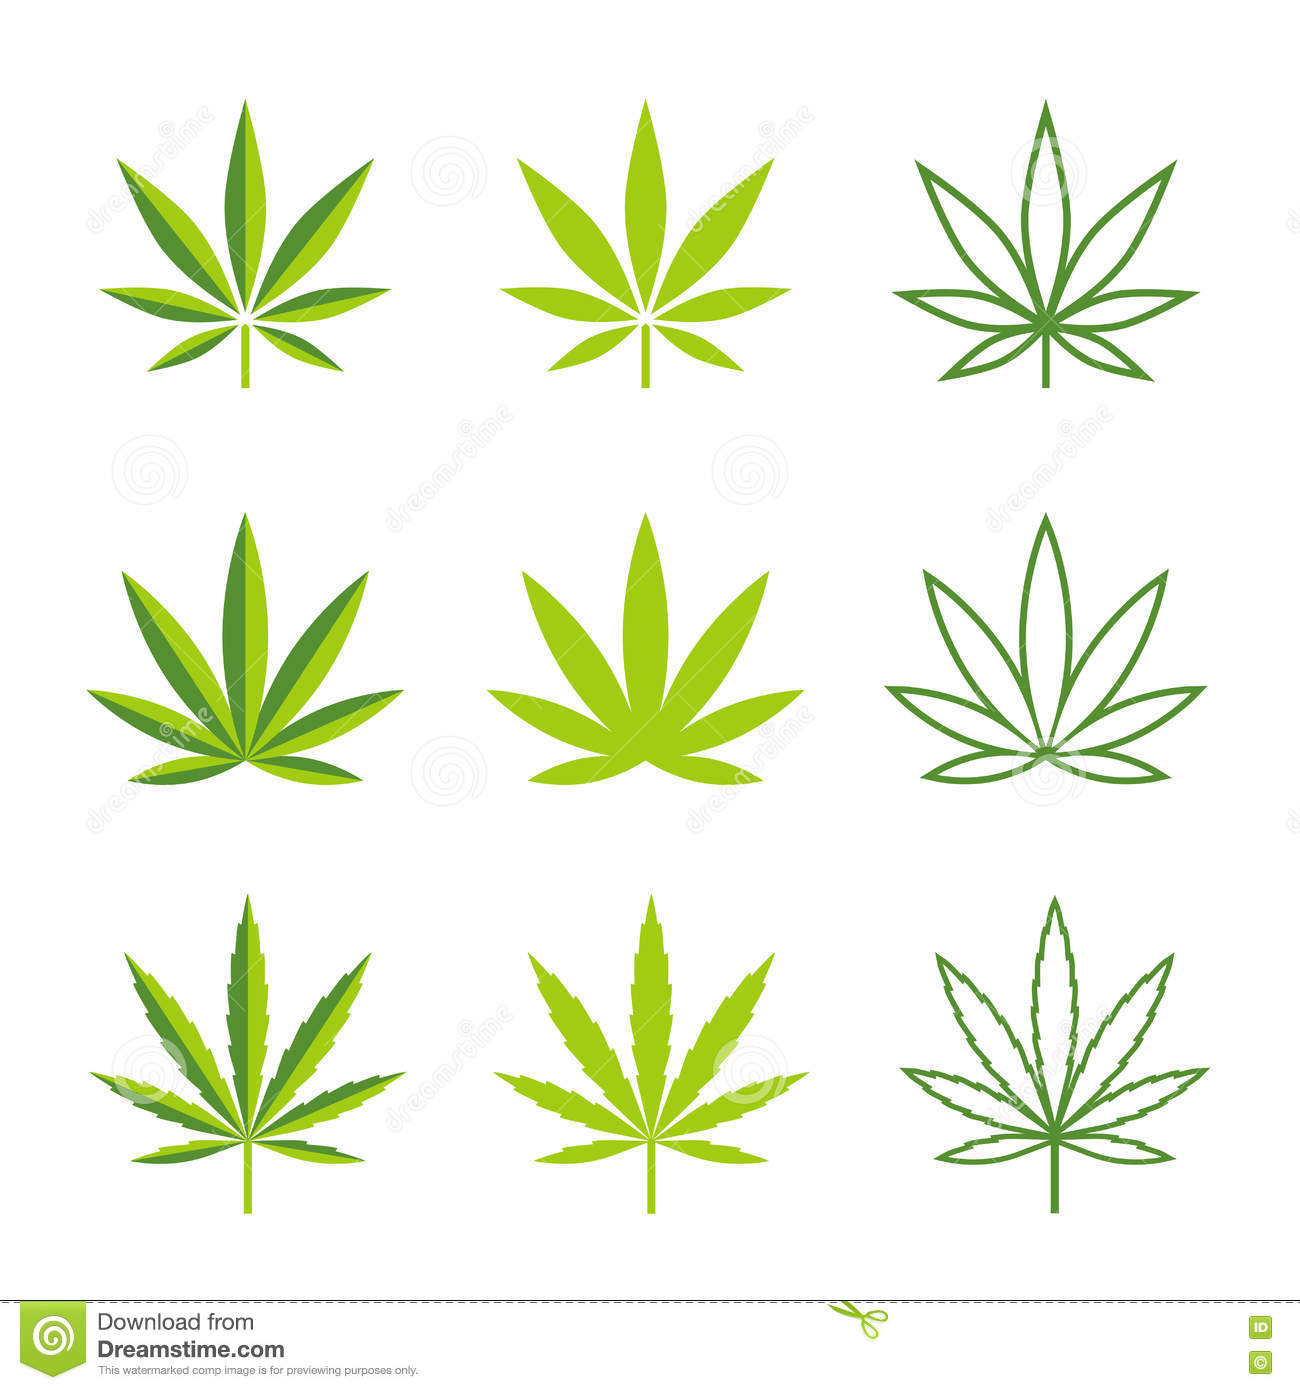 Marijuana Leaves Vector Icons Stock Vector Illustration Of Joint Icons 74499156